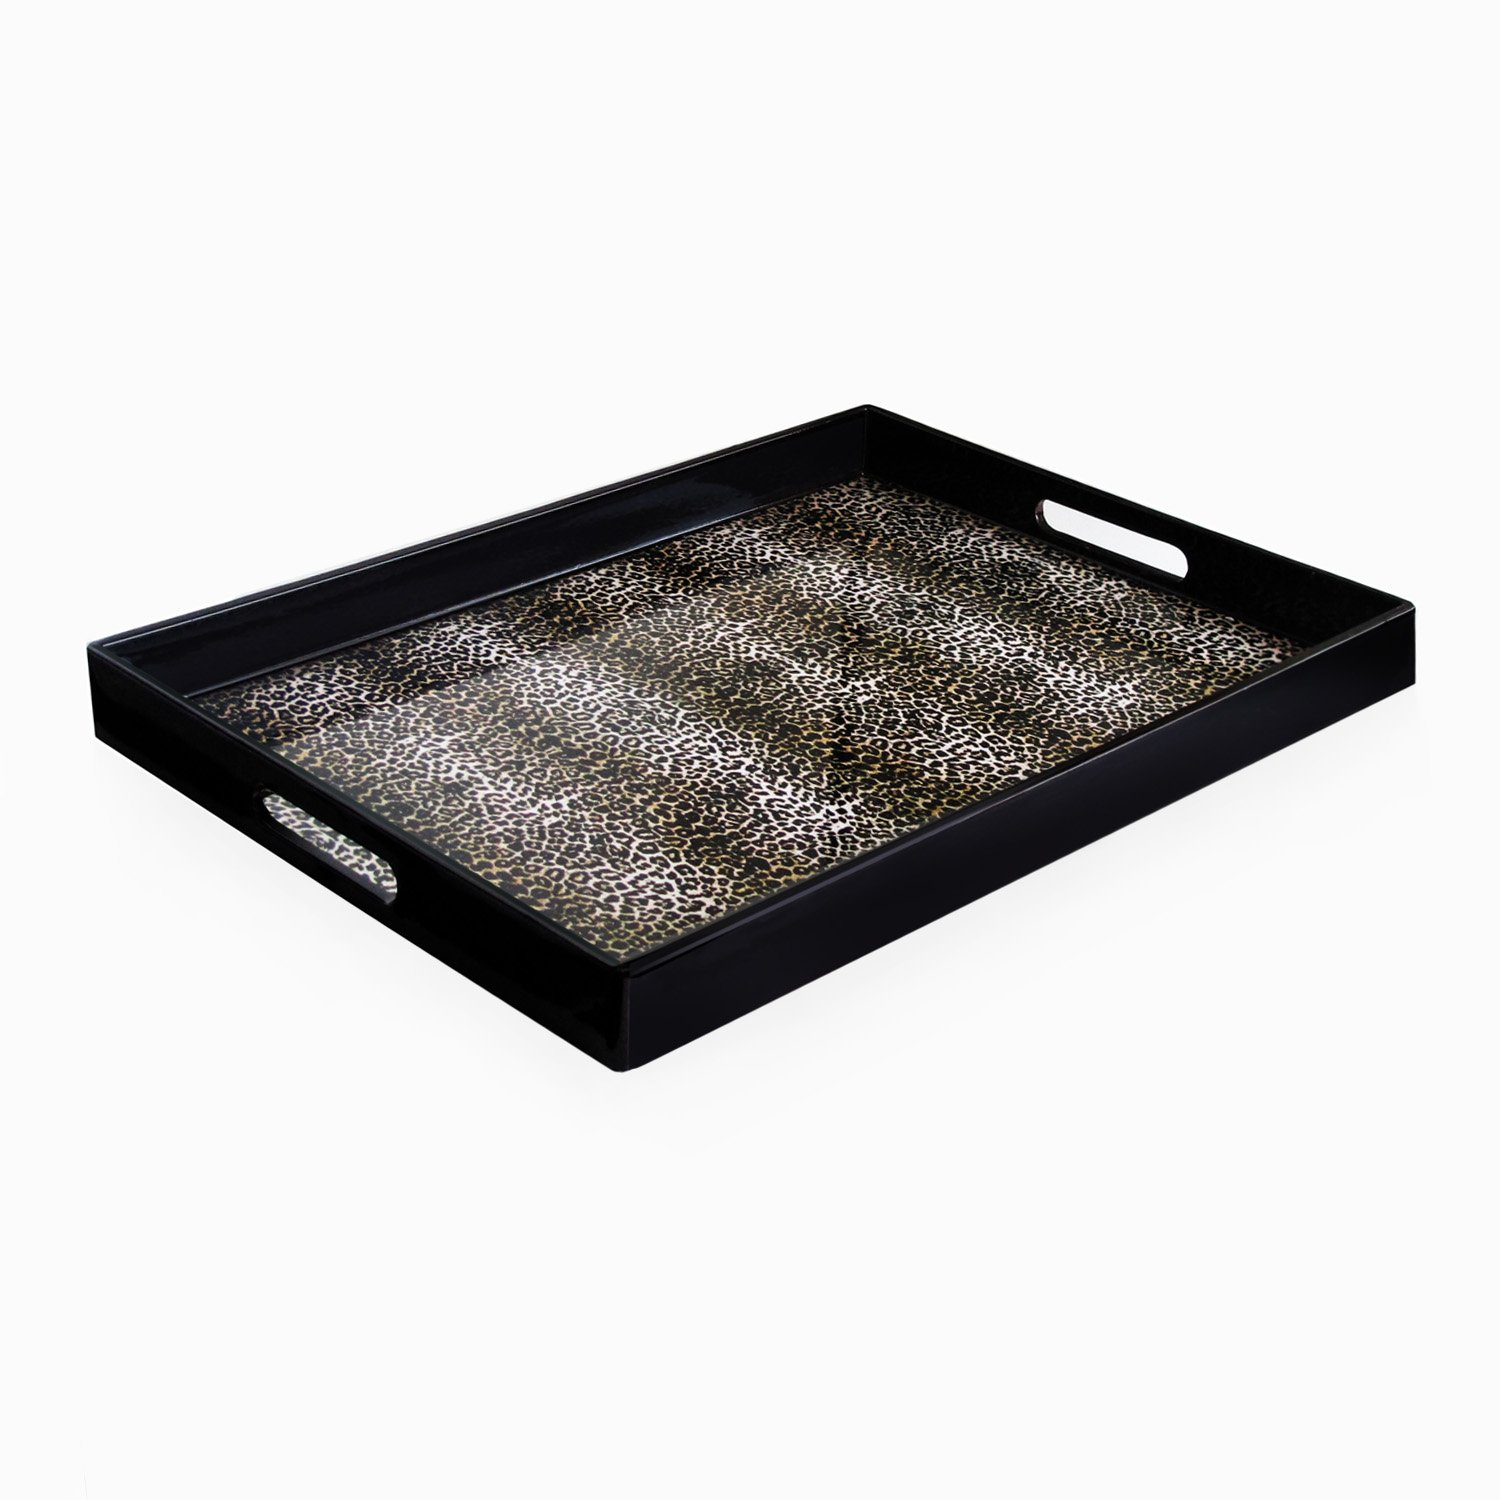 Accents by Jay Leopard Skin Rectangle Tray 1321005